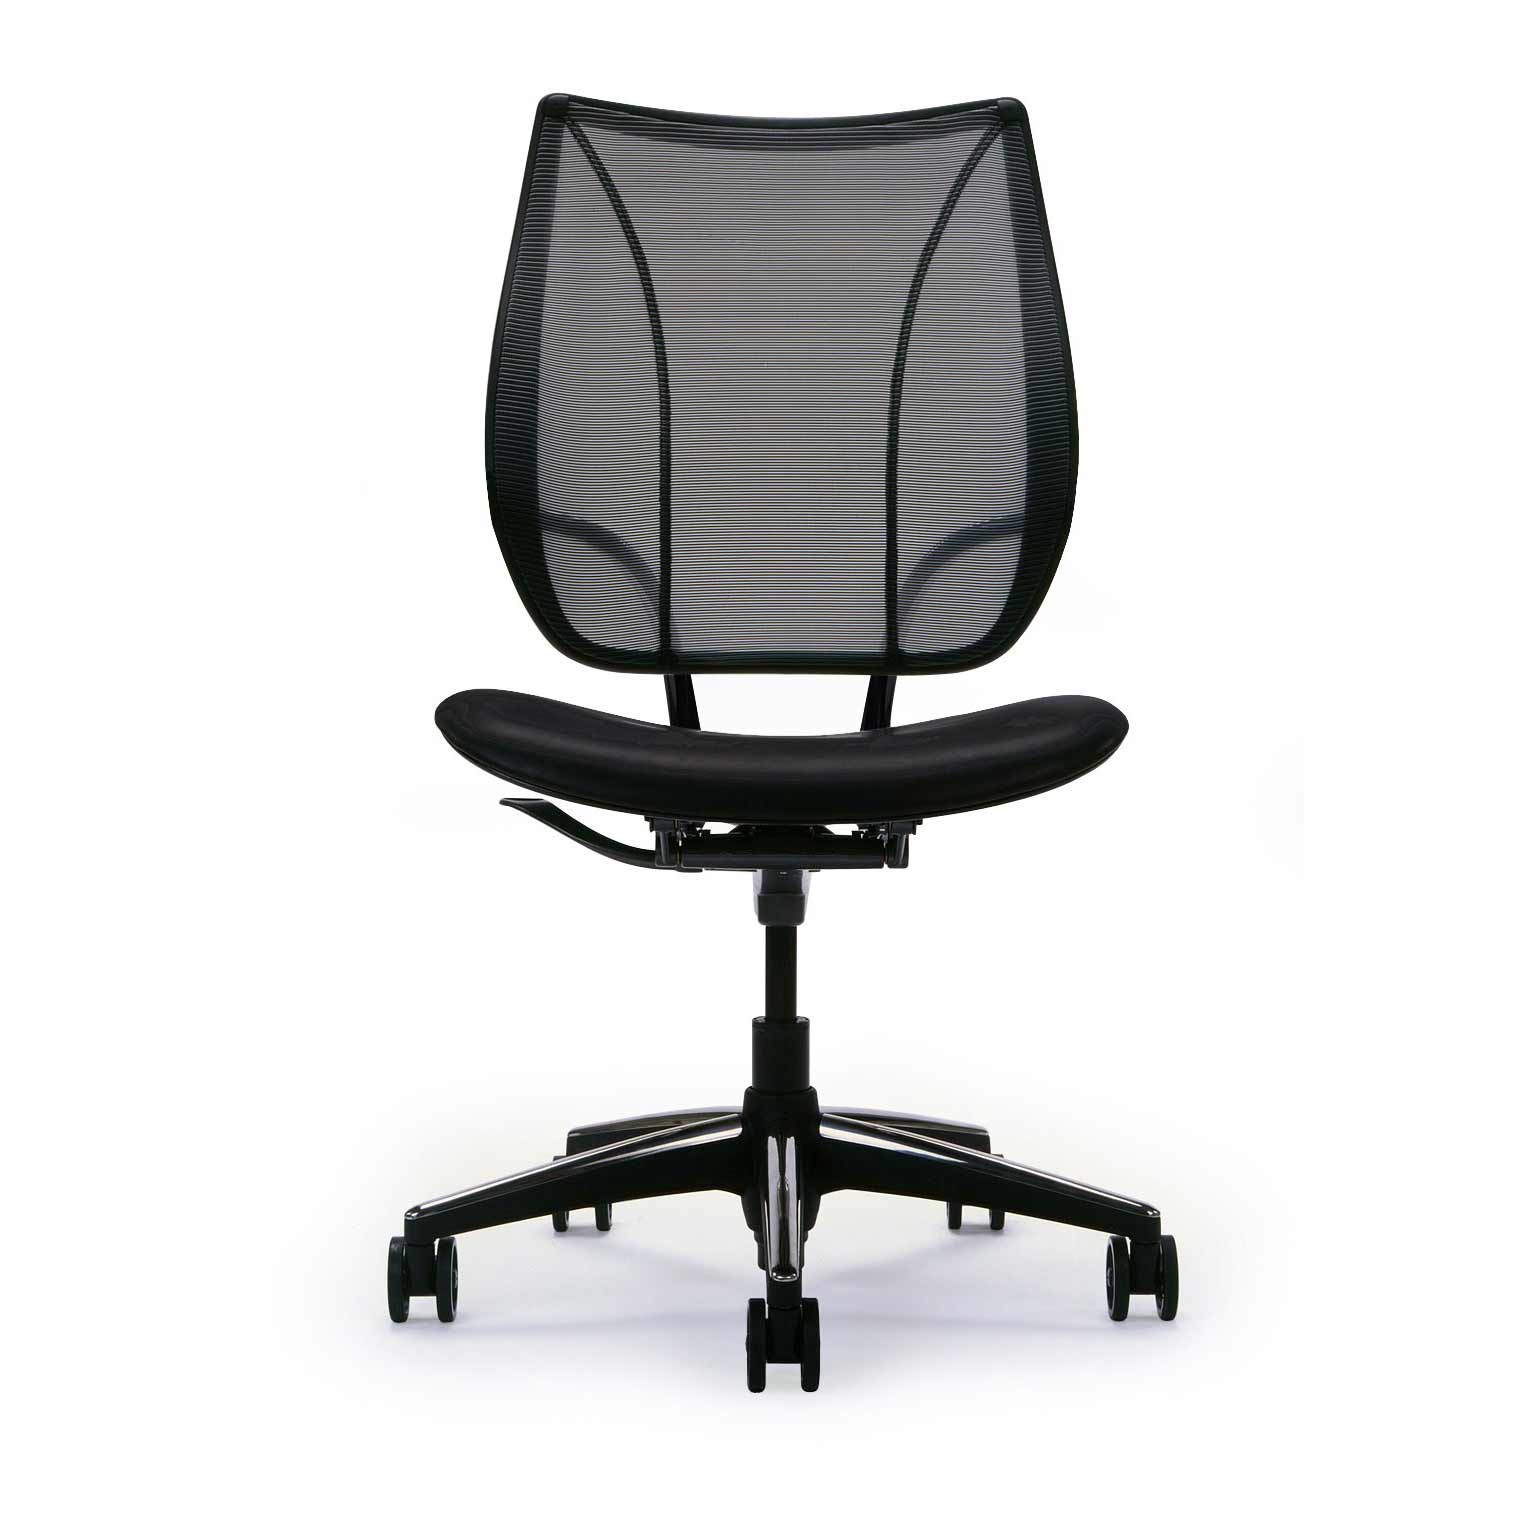 ergonomic office chairs Office Furniture : Humanscale Armless Black Ergonomic Back Mesh Office Chair Good Desk Posture <strong>Stool</strong> from office-turn.com size 1520 x 1520 jpeg 88kB